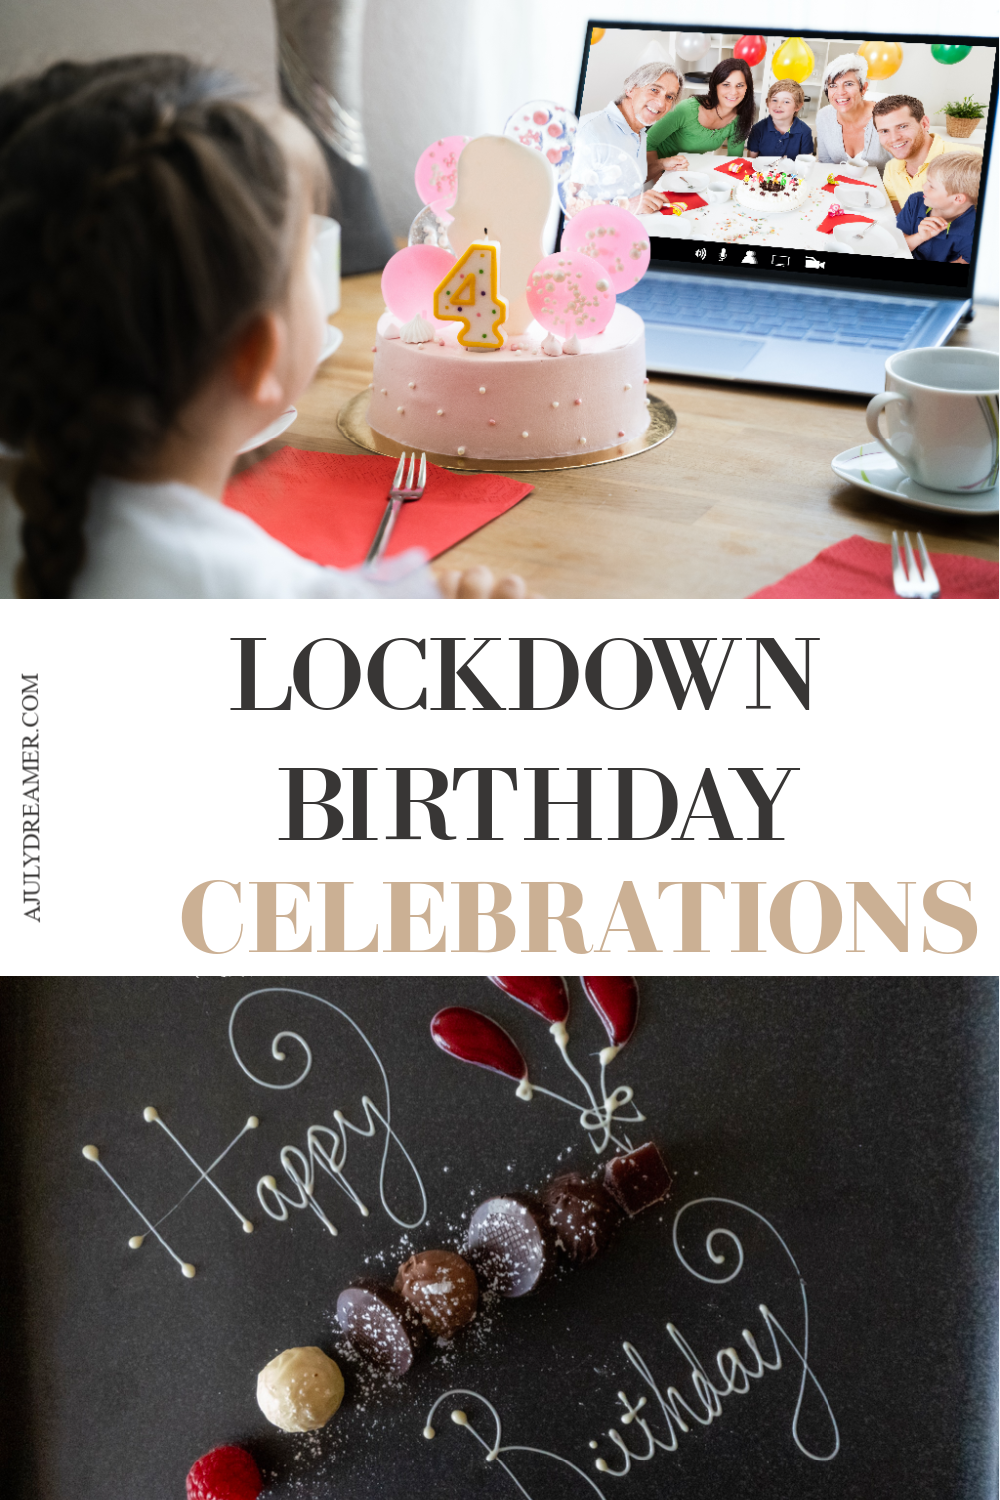 how to celebrate a birthday in lockdown